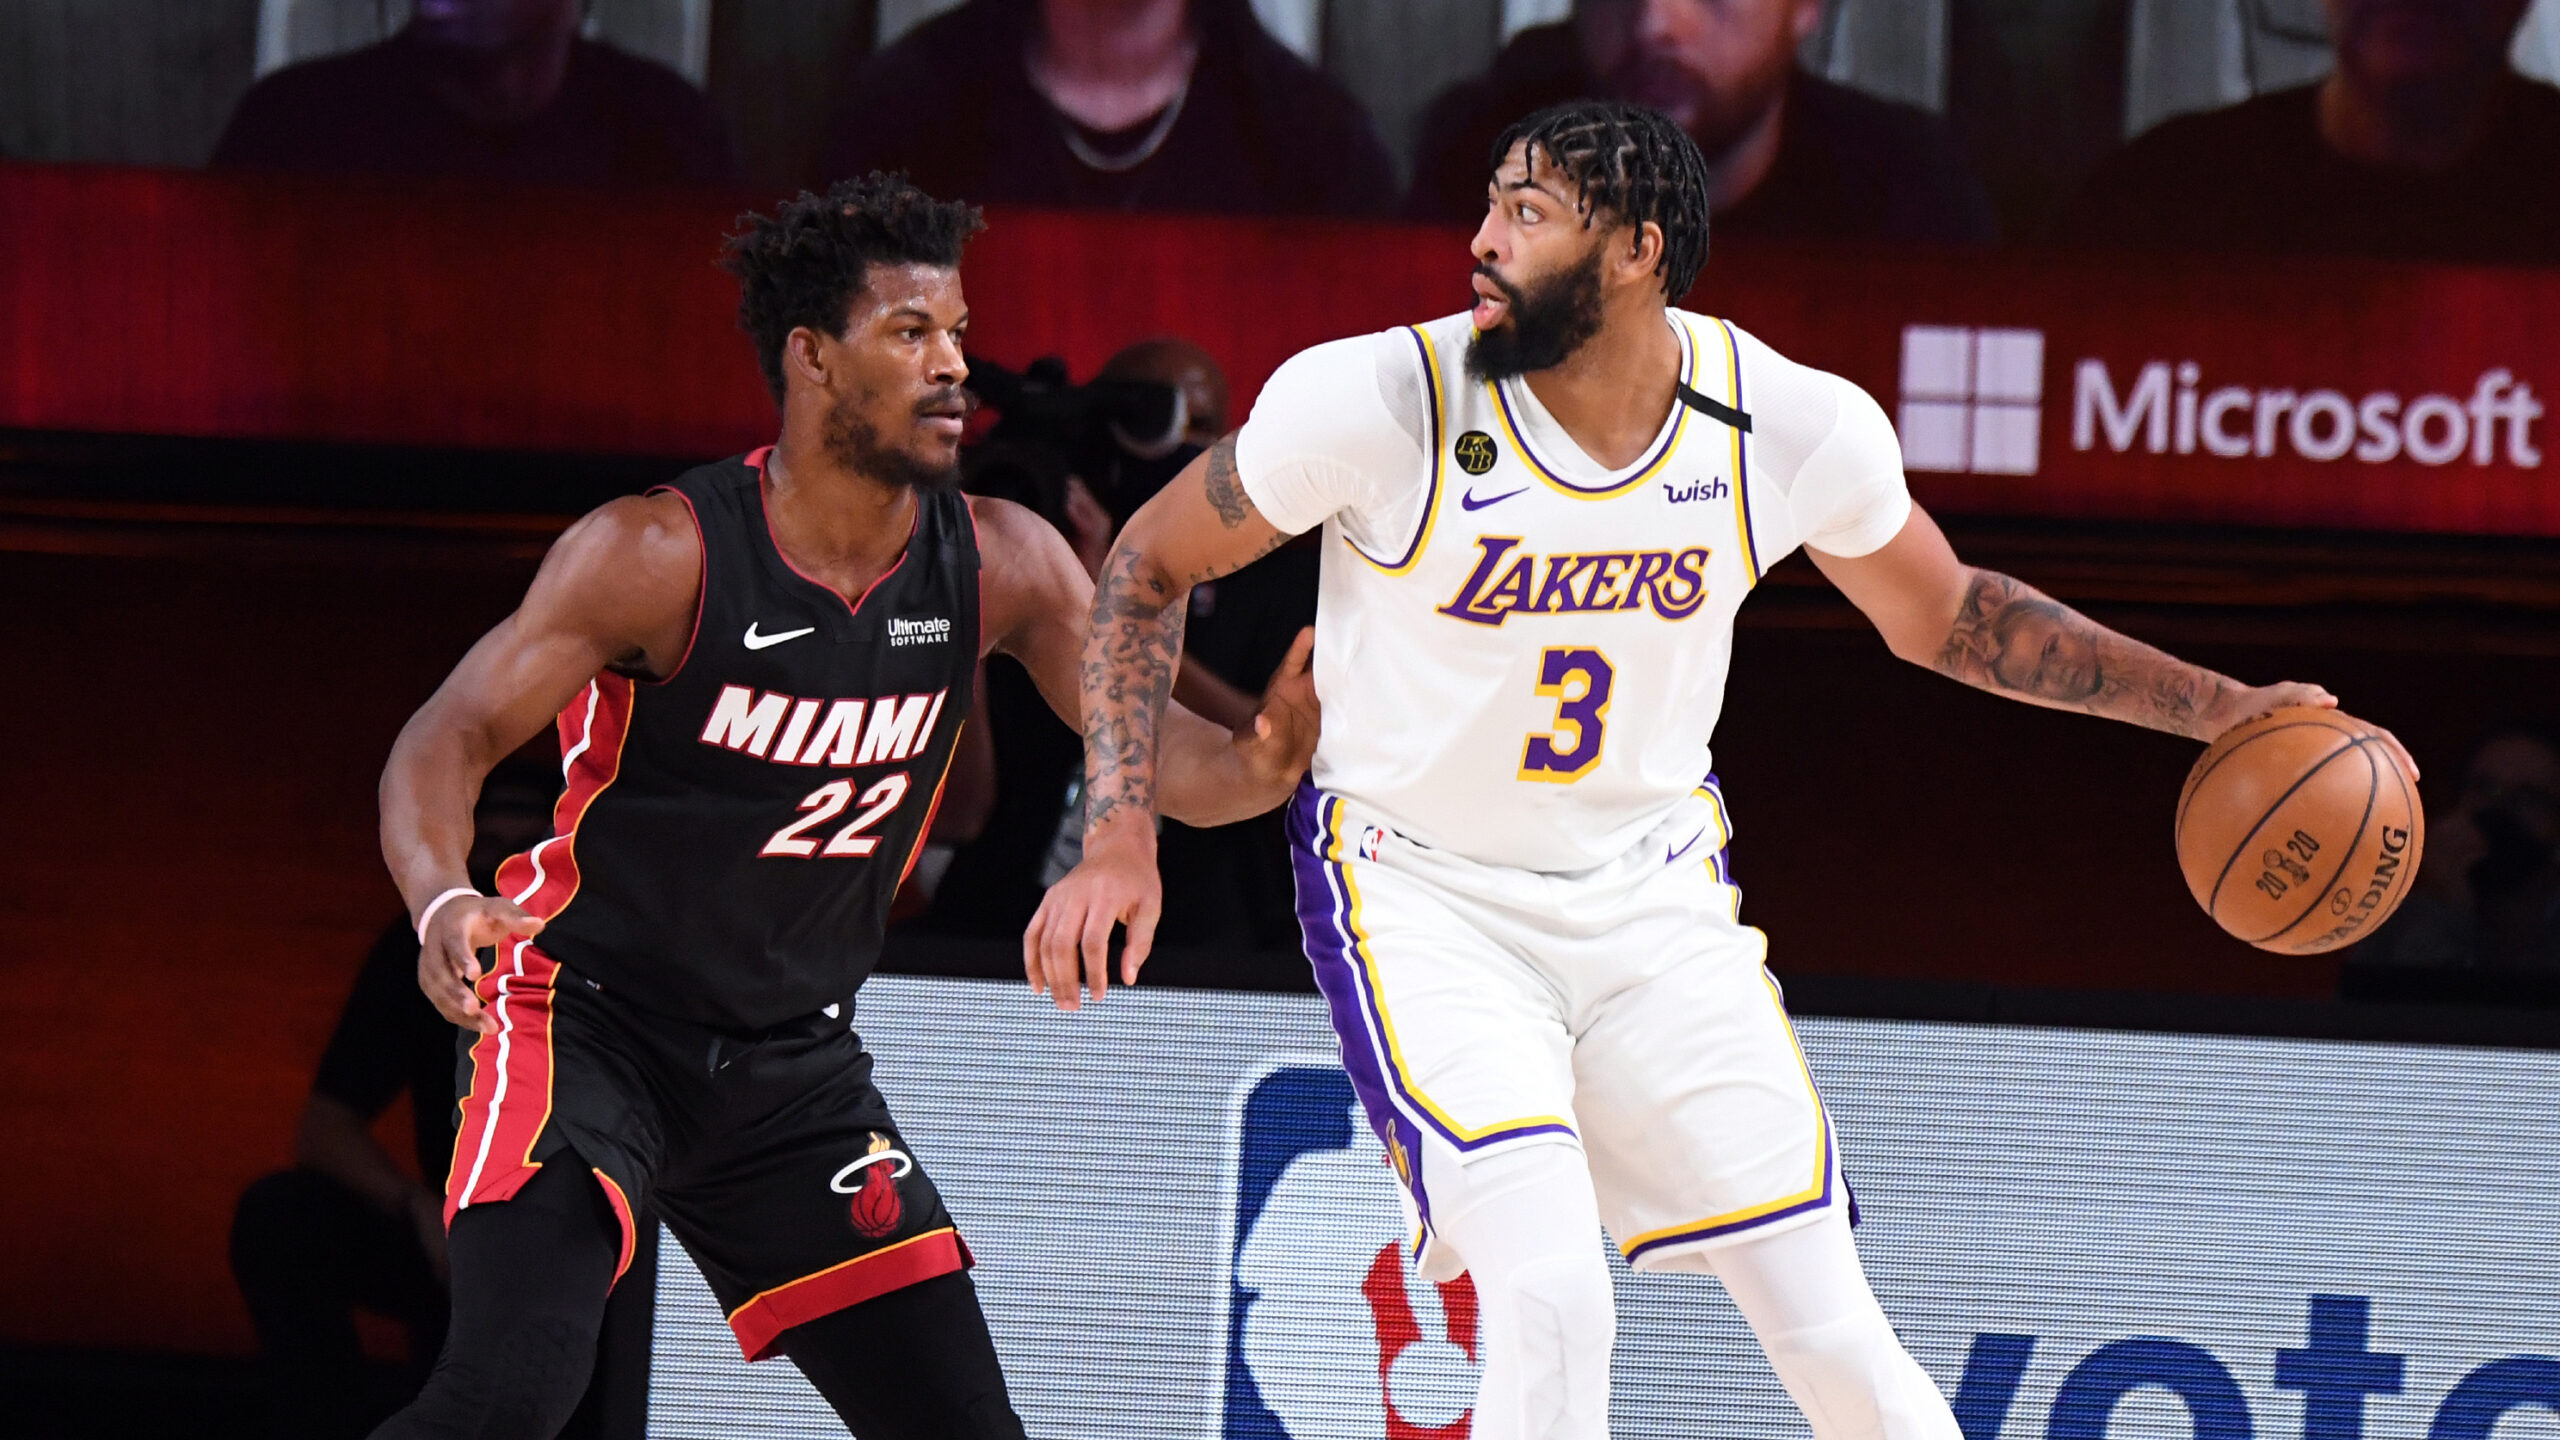 Lakers Topple Heat For Title No. 17